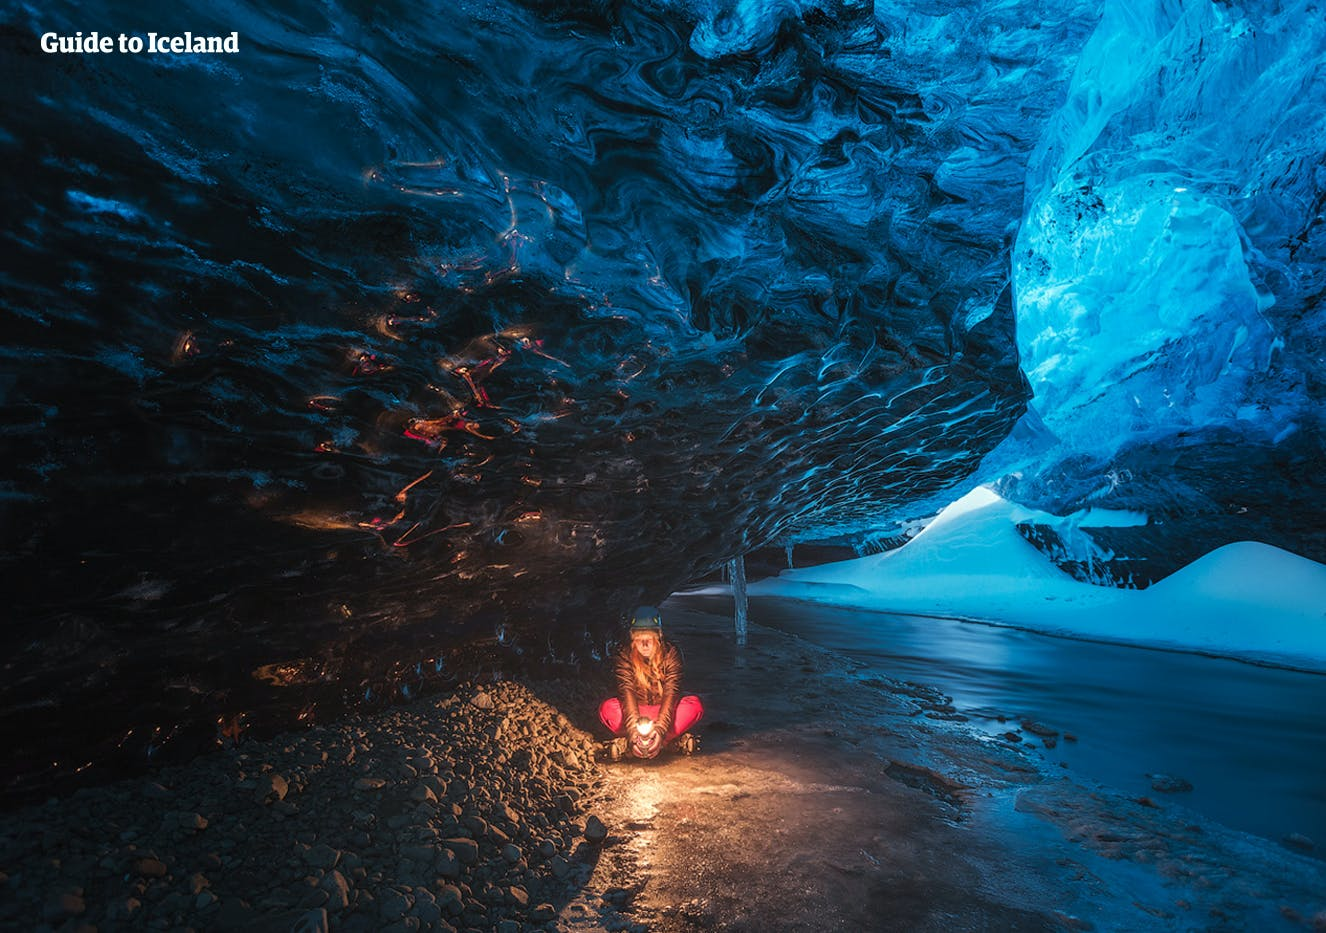 5-Day Winter Package   The Golden Circle, Ice Cave, Northern Lights & Blue Lagoon